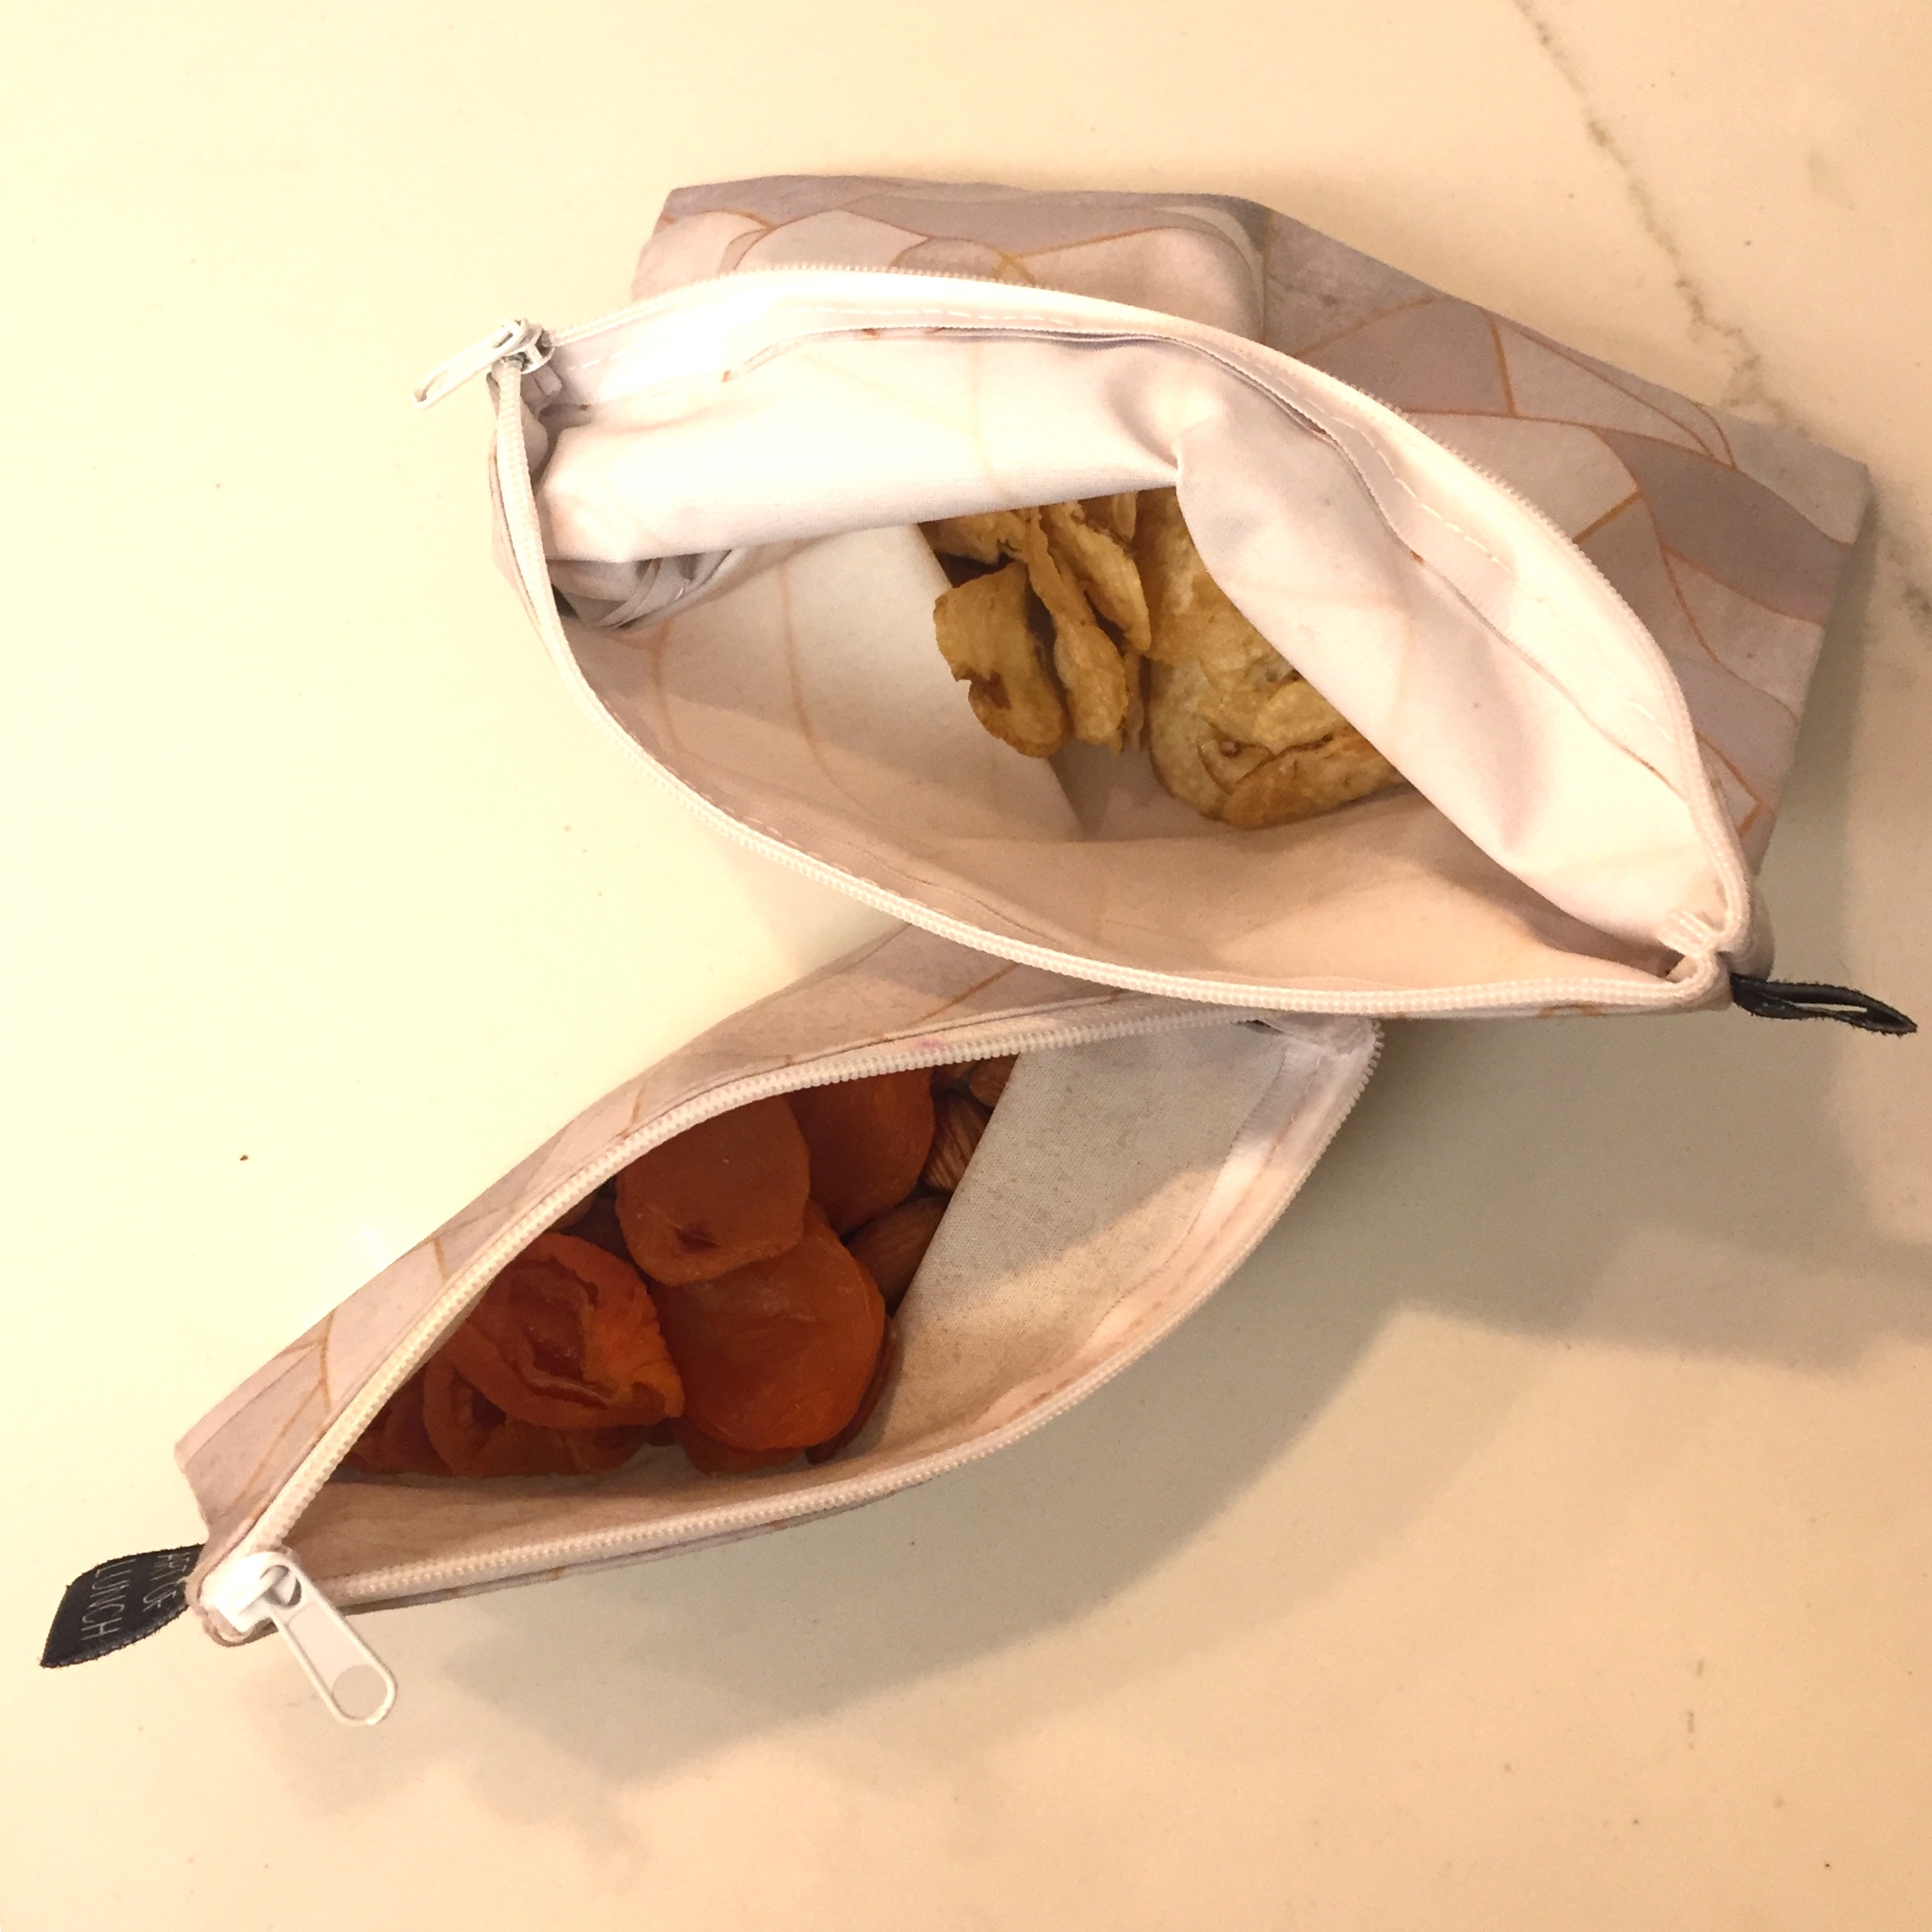 Reusable Snack Bags - These are the ABSOLUTE BEST and I never leave home without mine. One is for nuts and dried fruit and the other is for bigger snacks (like popcorn, pretzels or chips). They're washable and can literally be used for years and years. Granda Tidy Tova will be using these, no doubt.